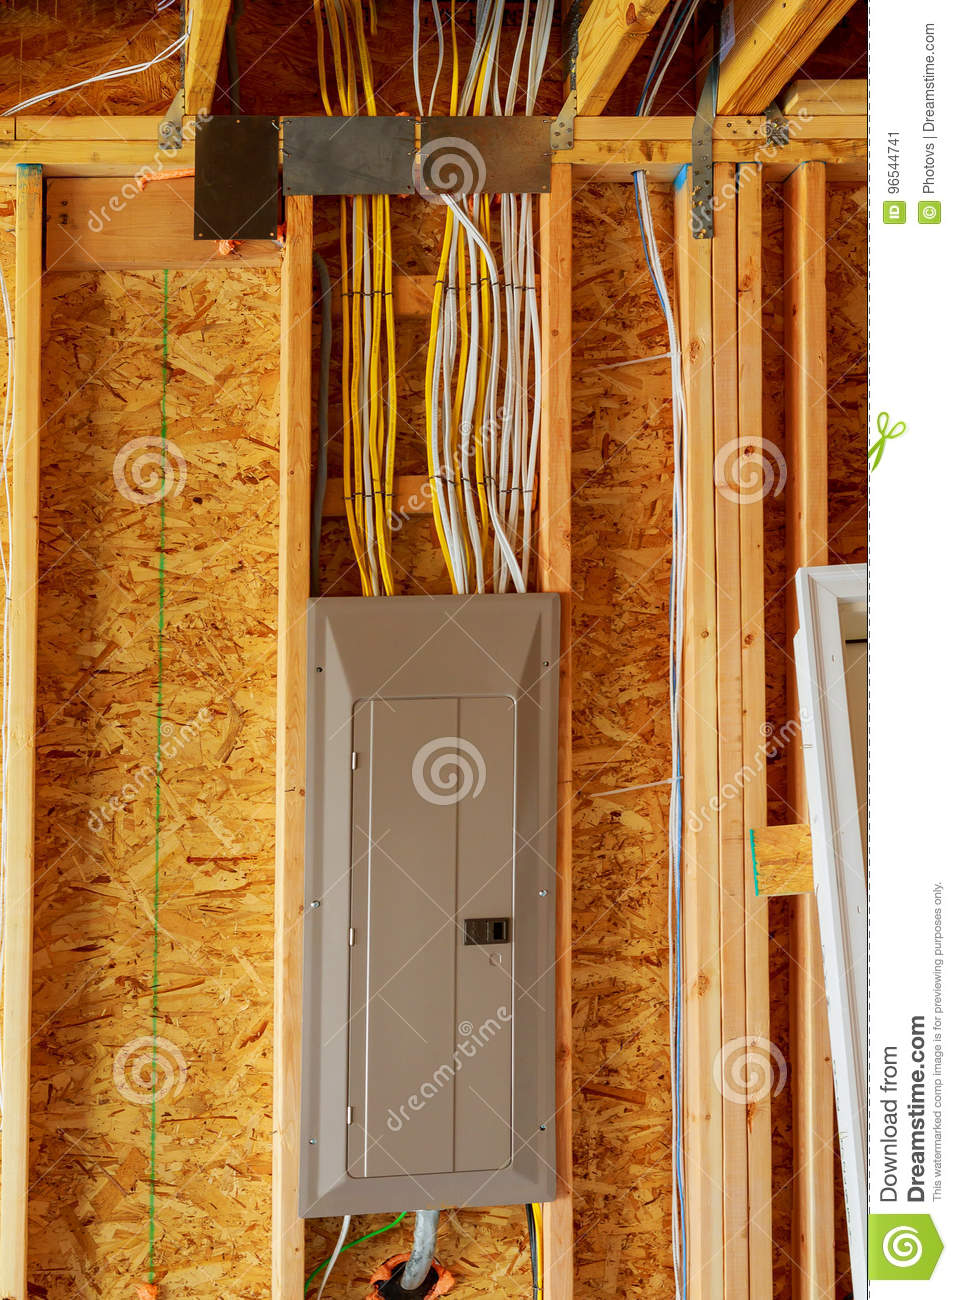 hight resolution of the frame building or house with basic electrical wiring